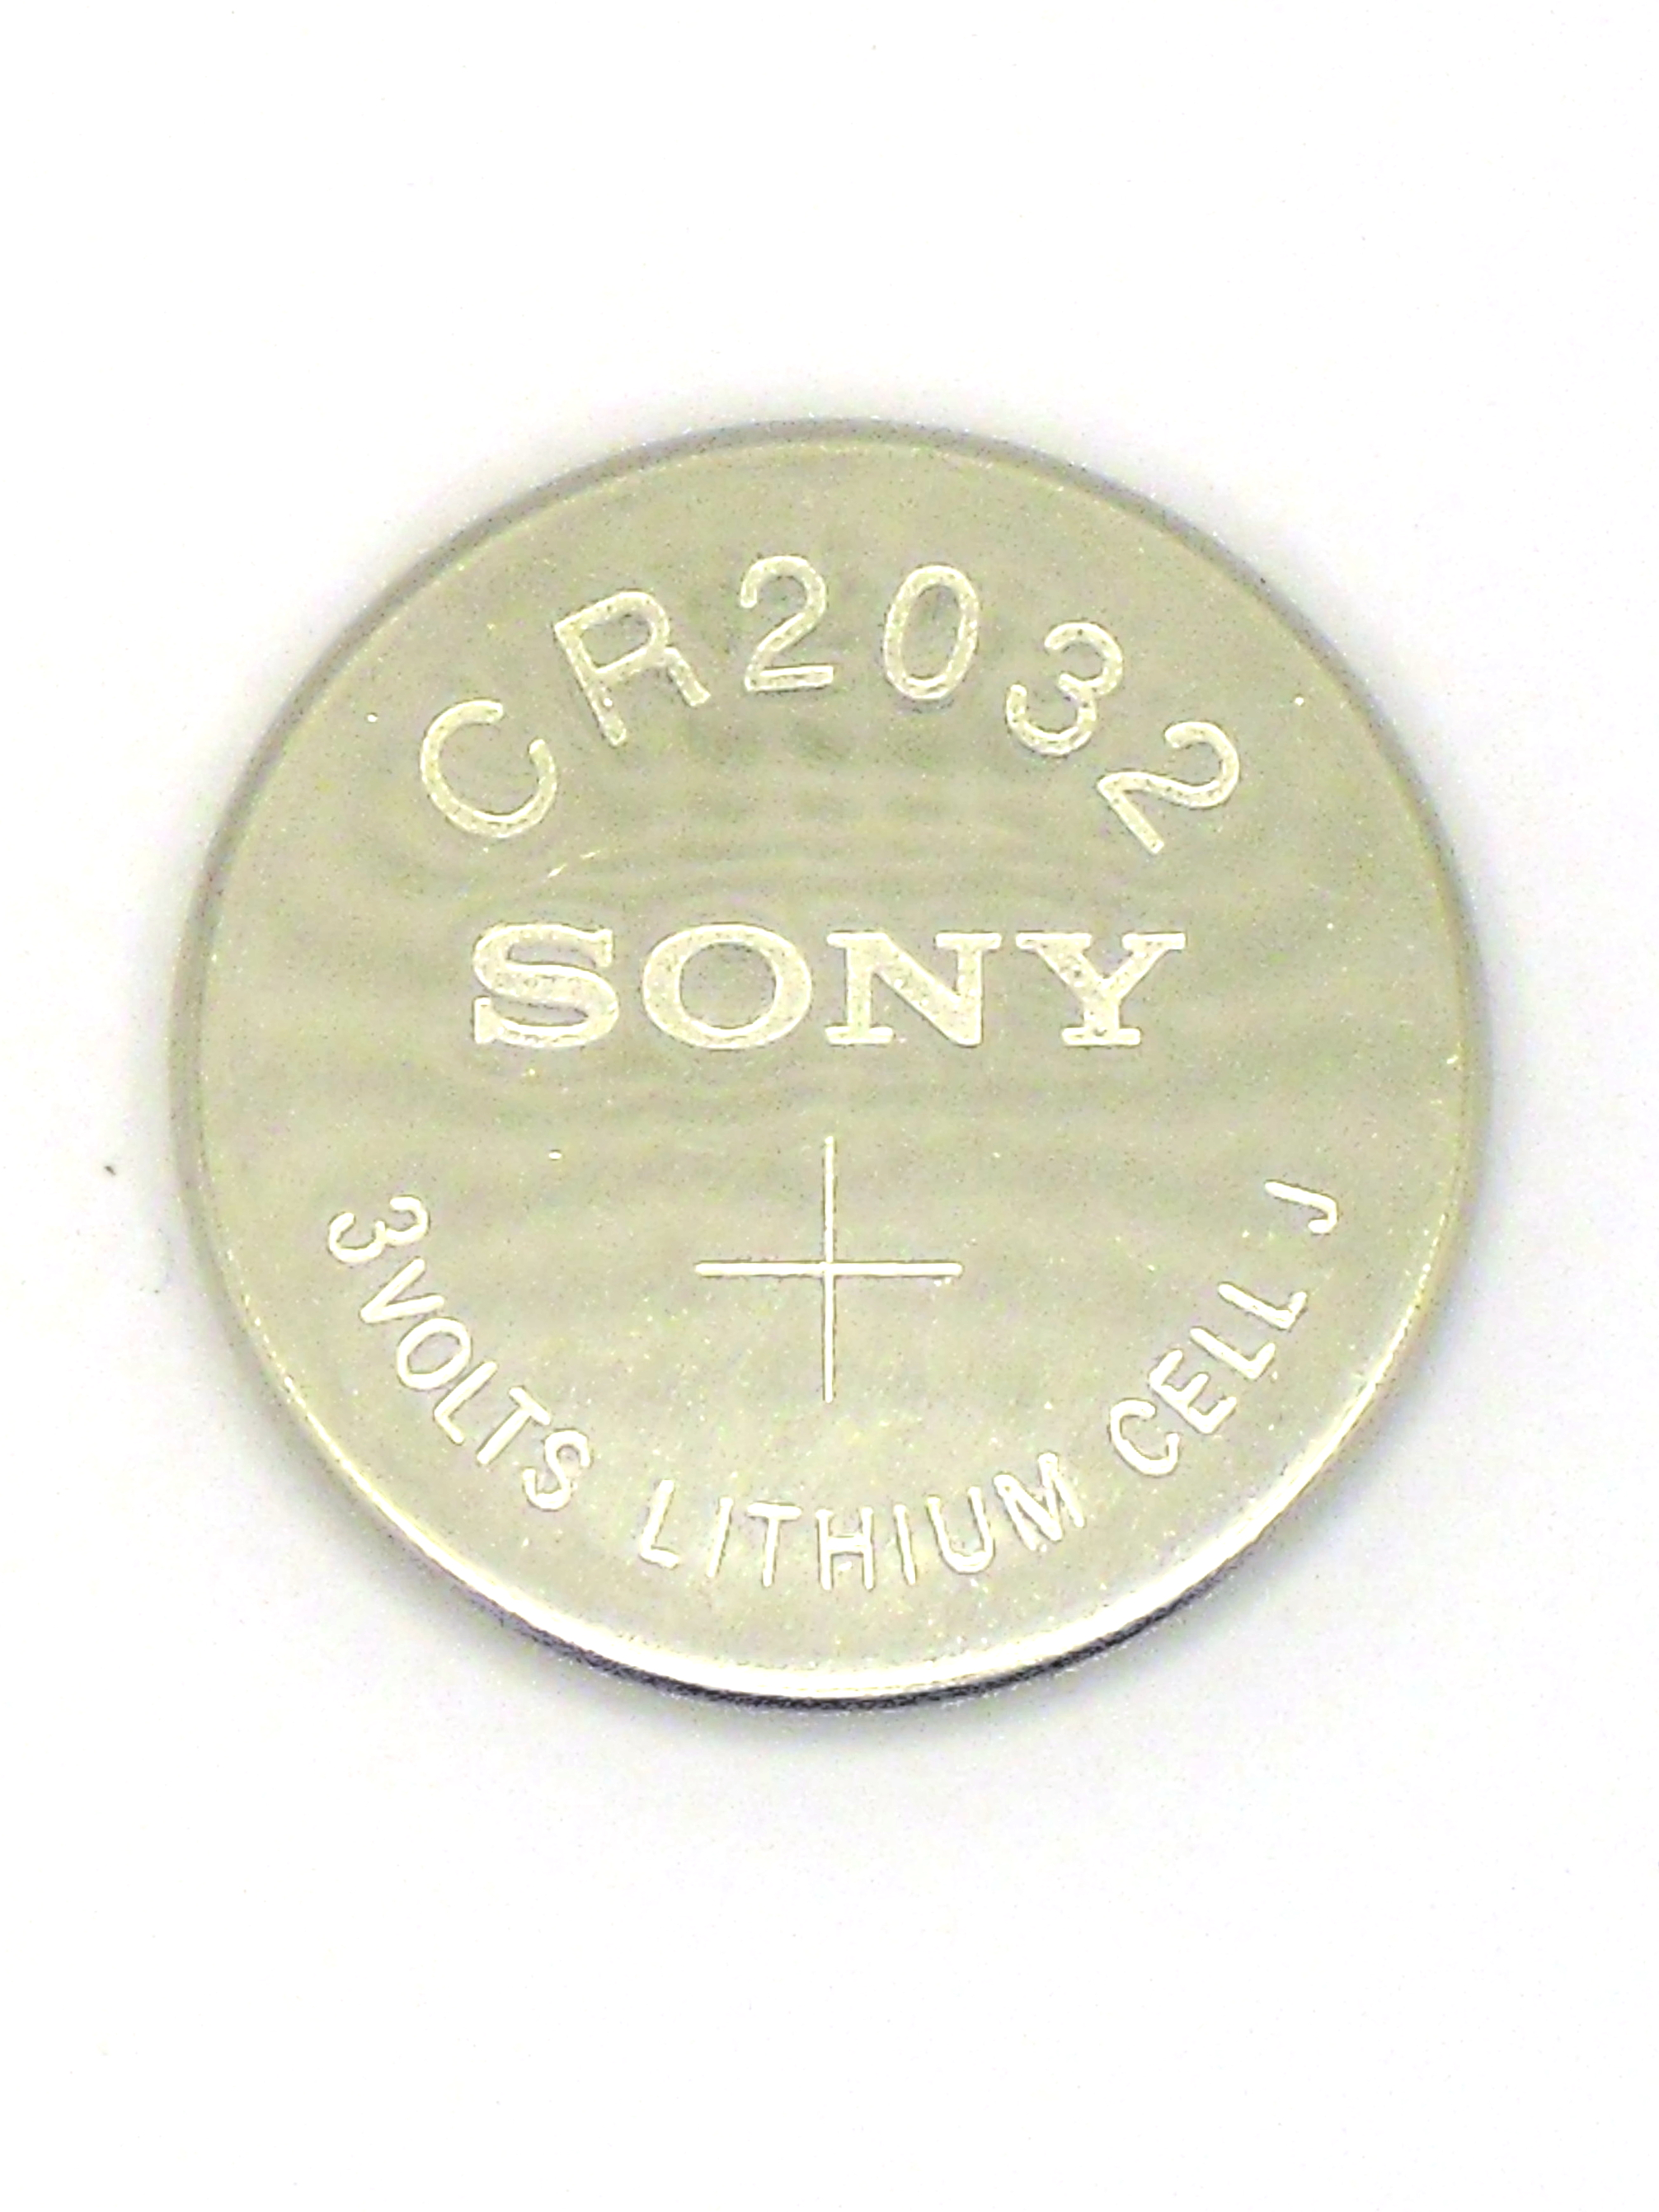 CR2032 Replacement Battery